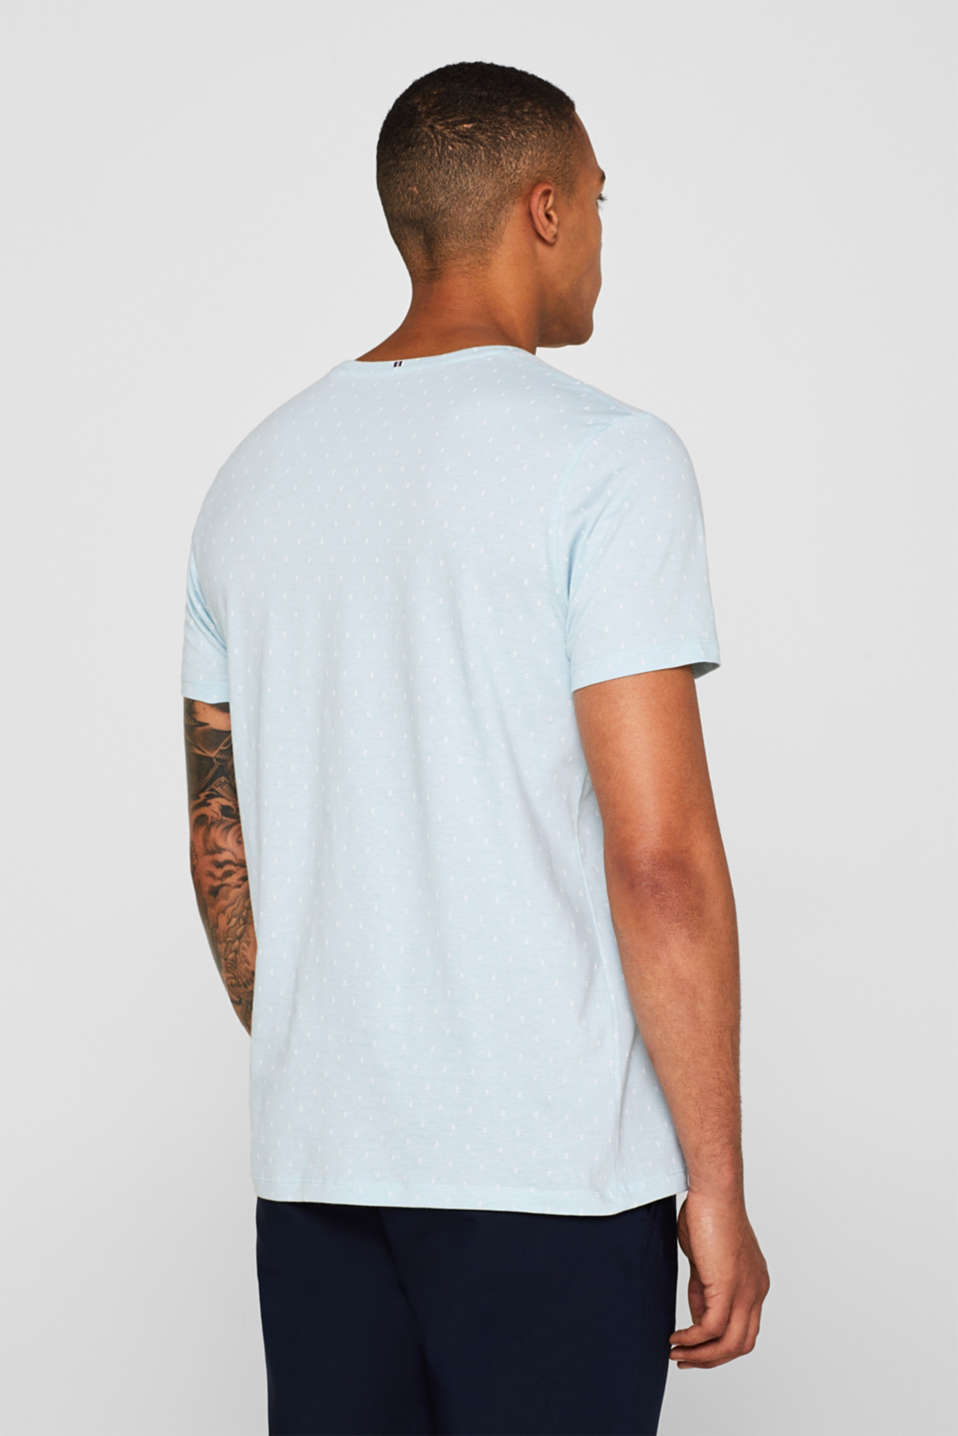 Jersey top with an all-over print, 100% cotton, LIGHT BLUE, detail image number 3